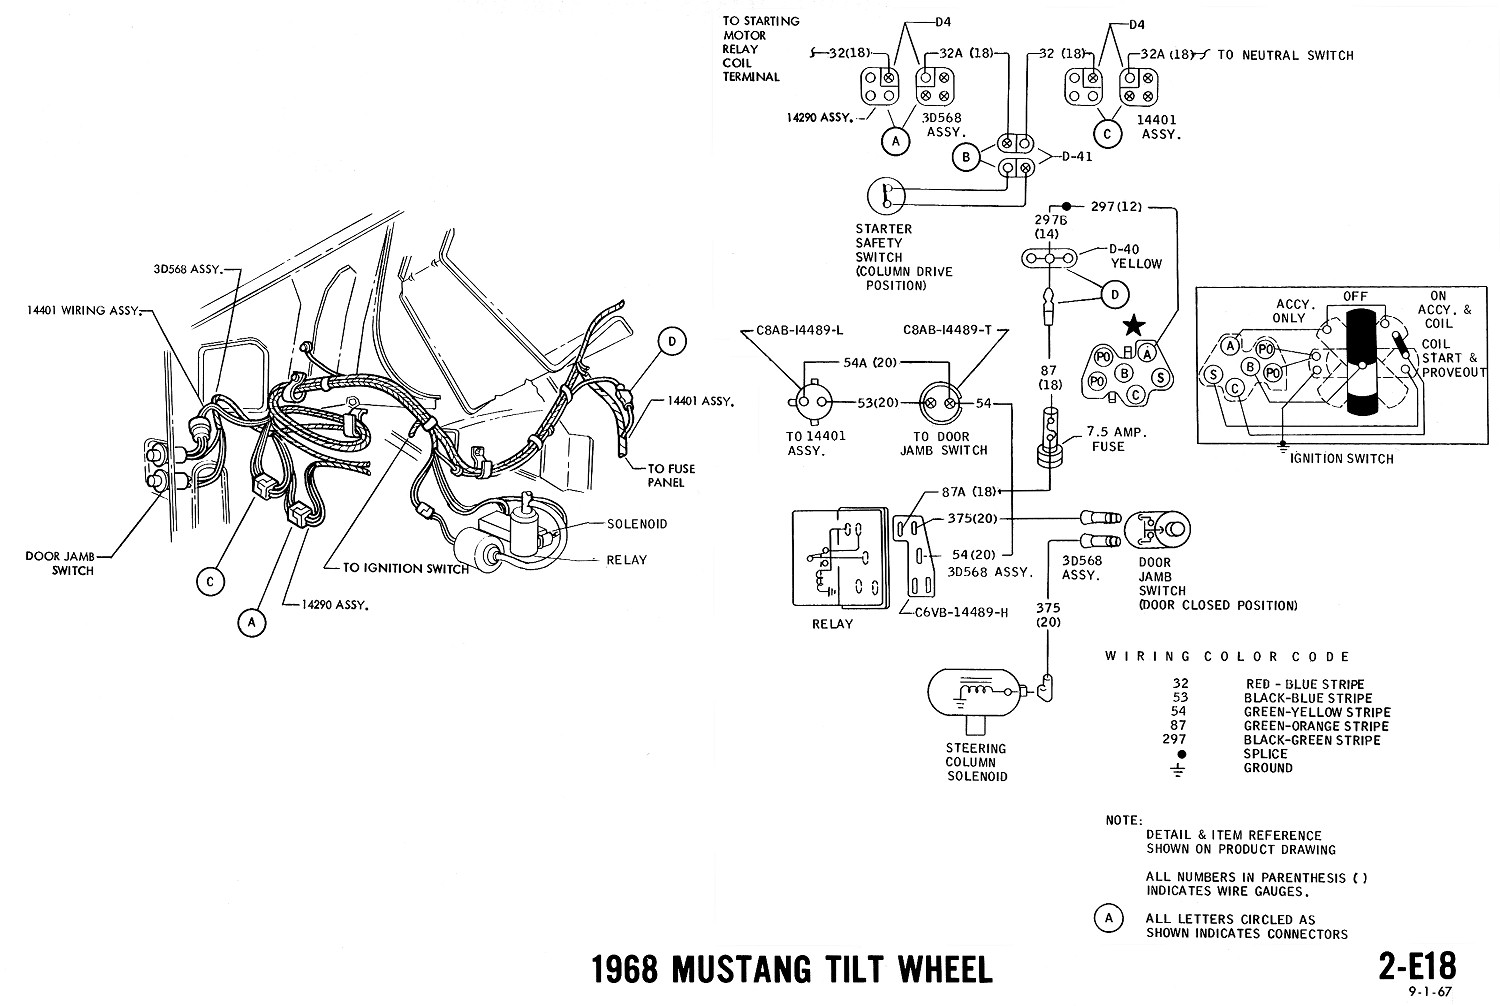 1968 mustang convertible top wiring diagram